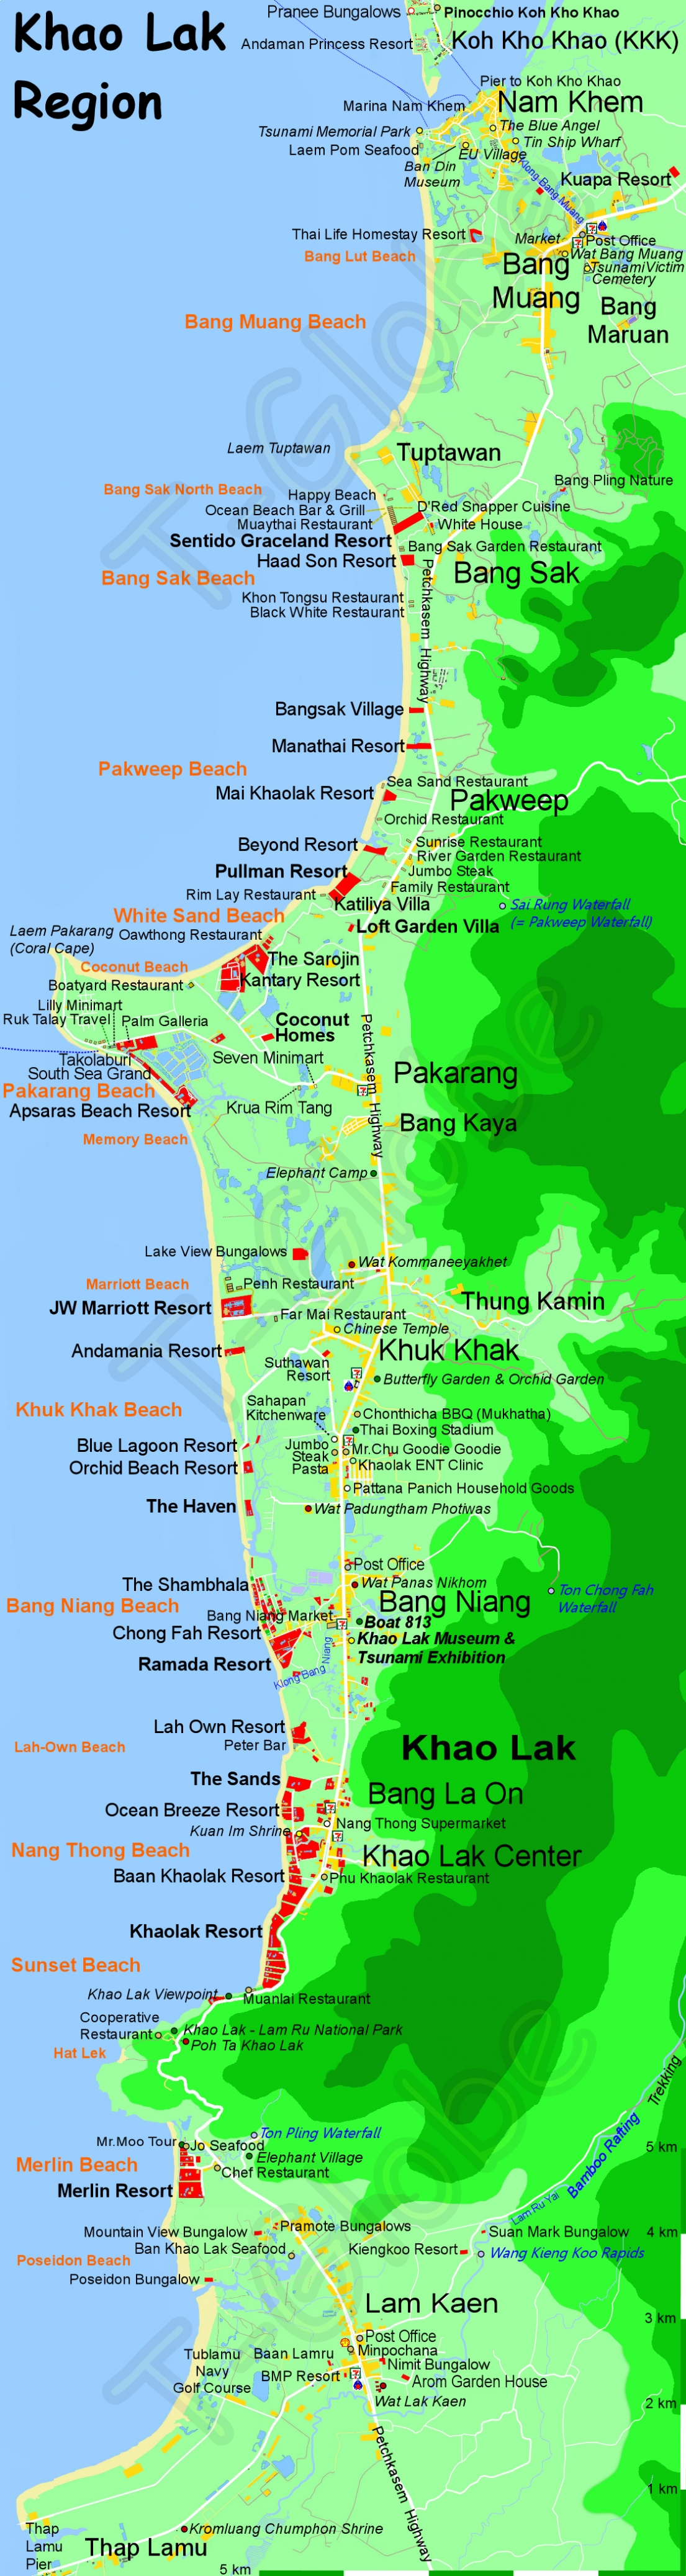 Khao Lak Region Map Best Khao Lak Map by tGlobe Phang Nga Thailand